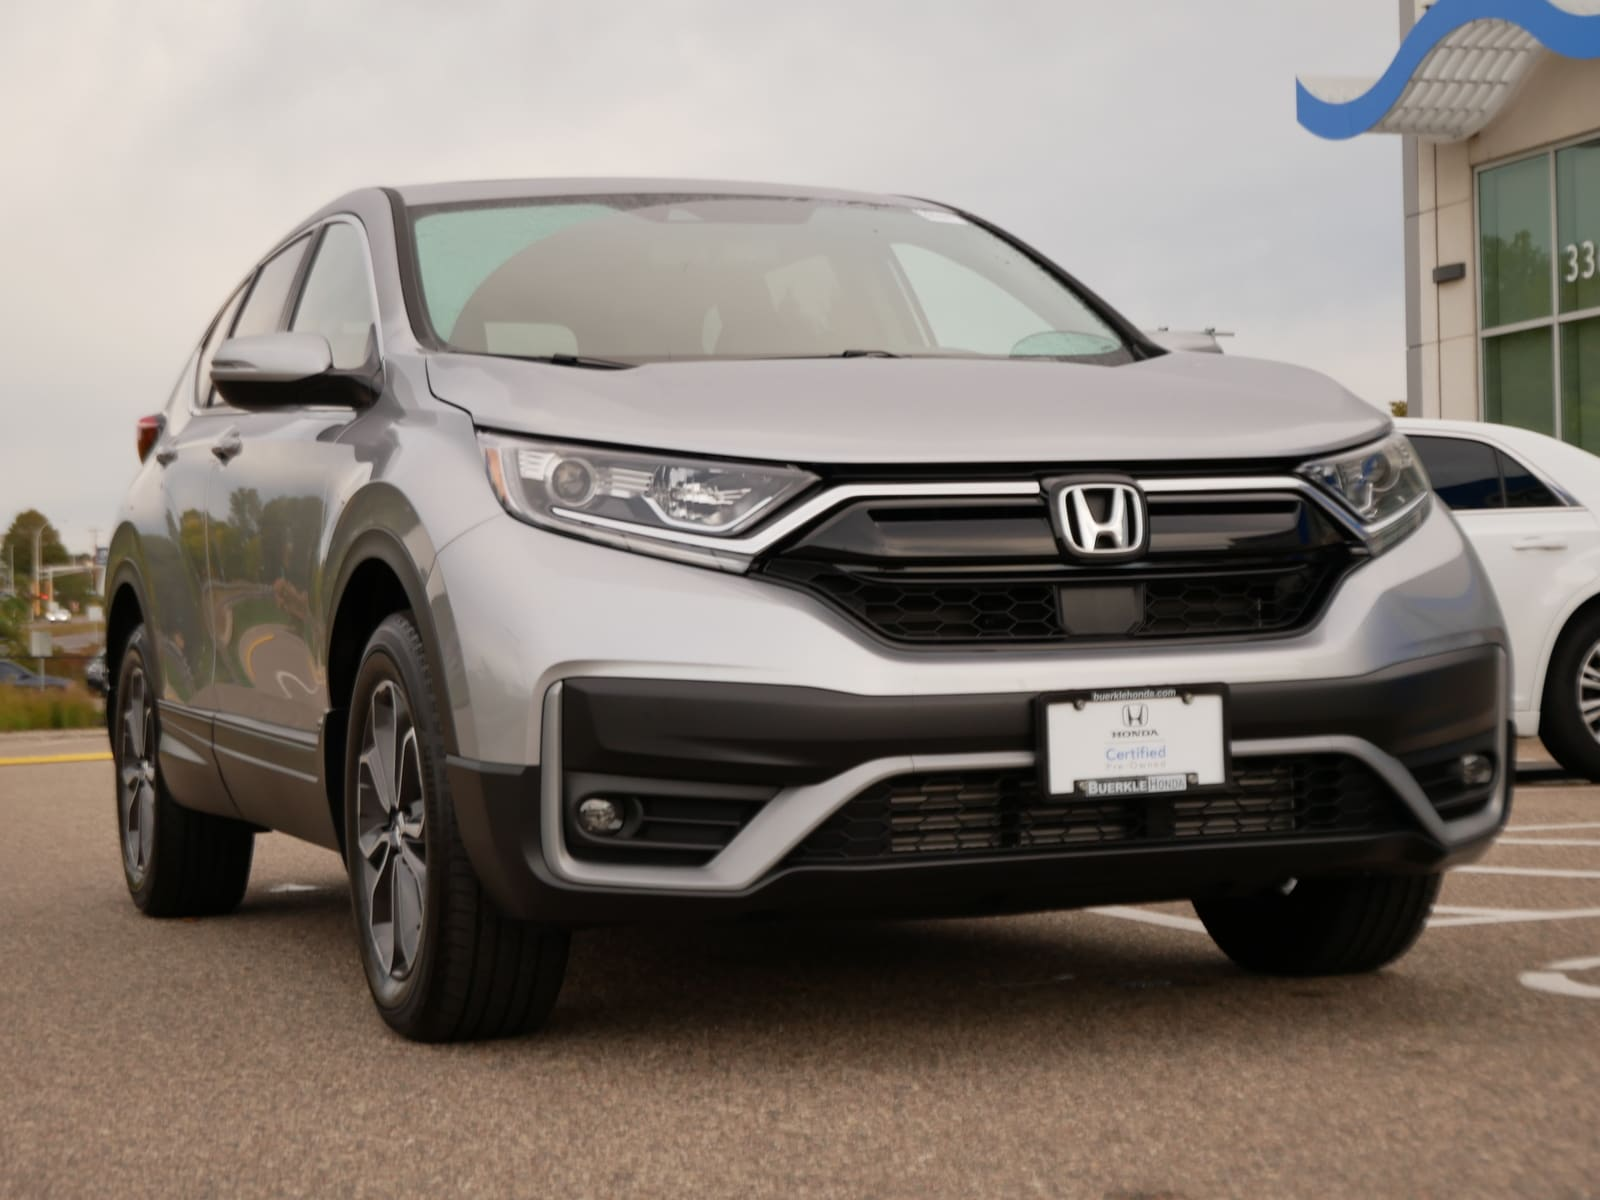 Certified 2020 Honda CR-V EX-L with VIN 2HKRW2H81LH607642 for sale in Saint Paul, Minnesota